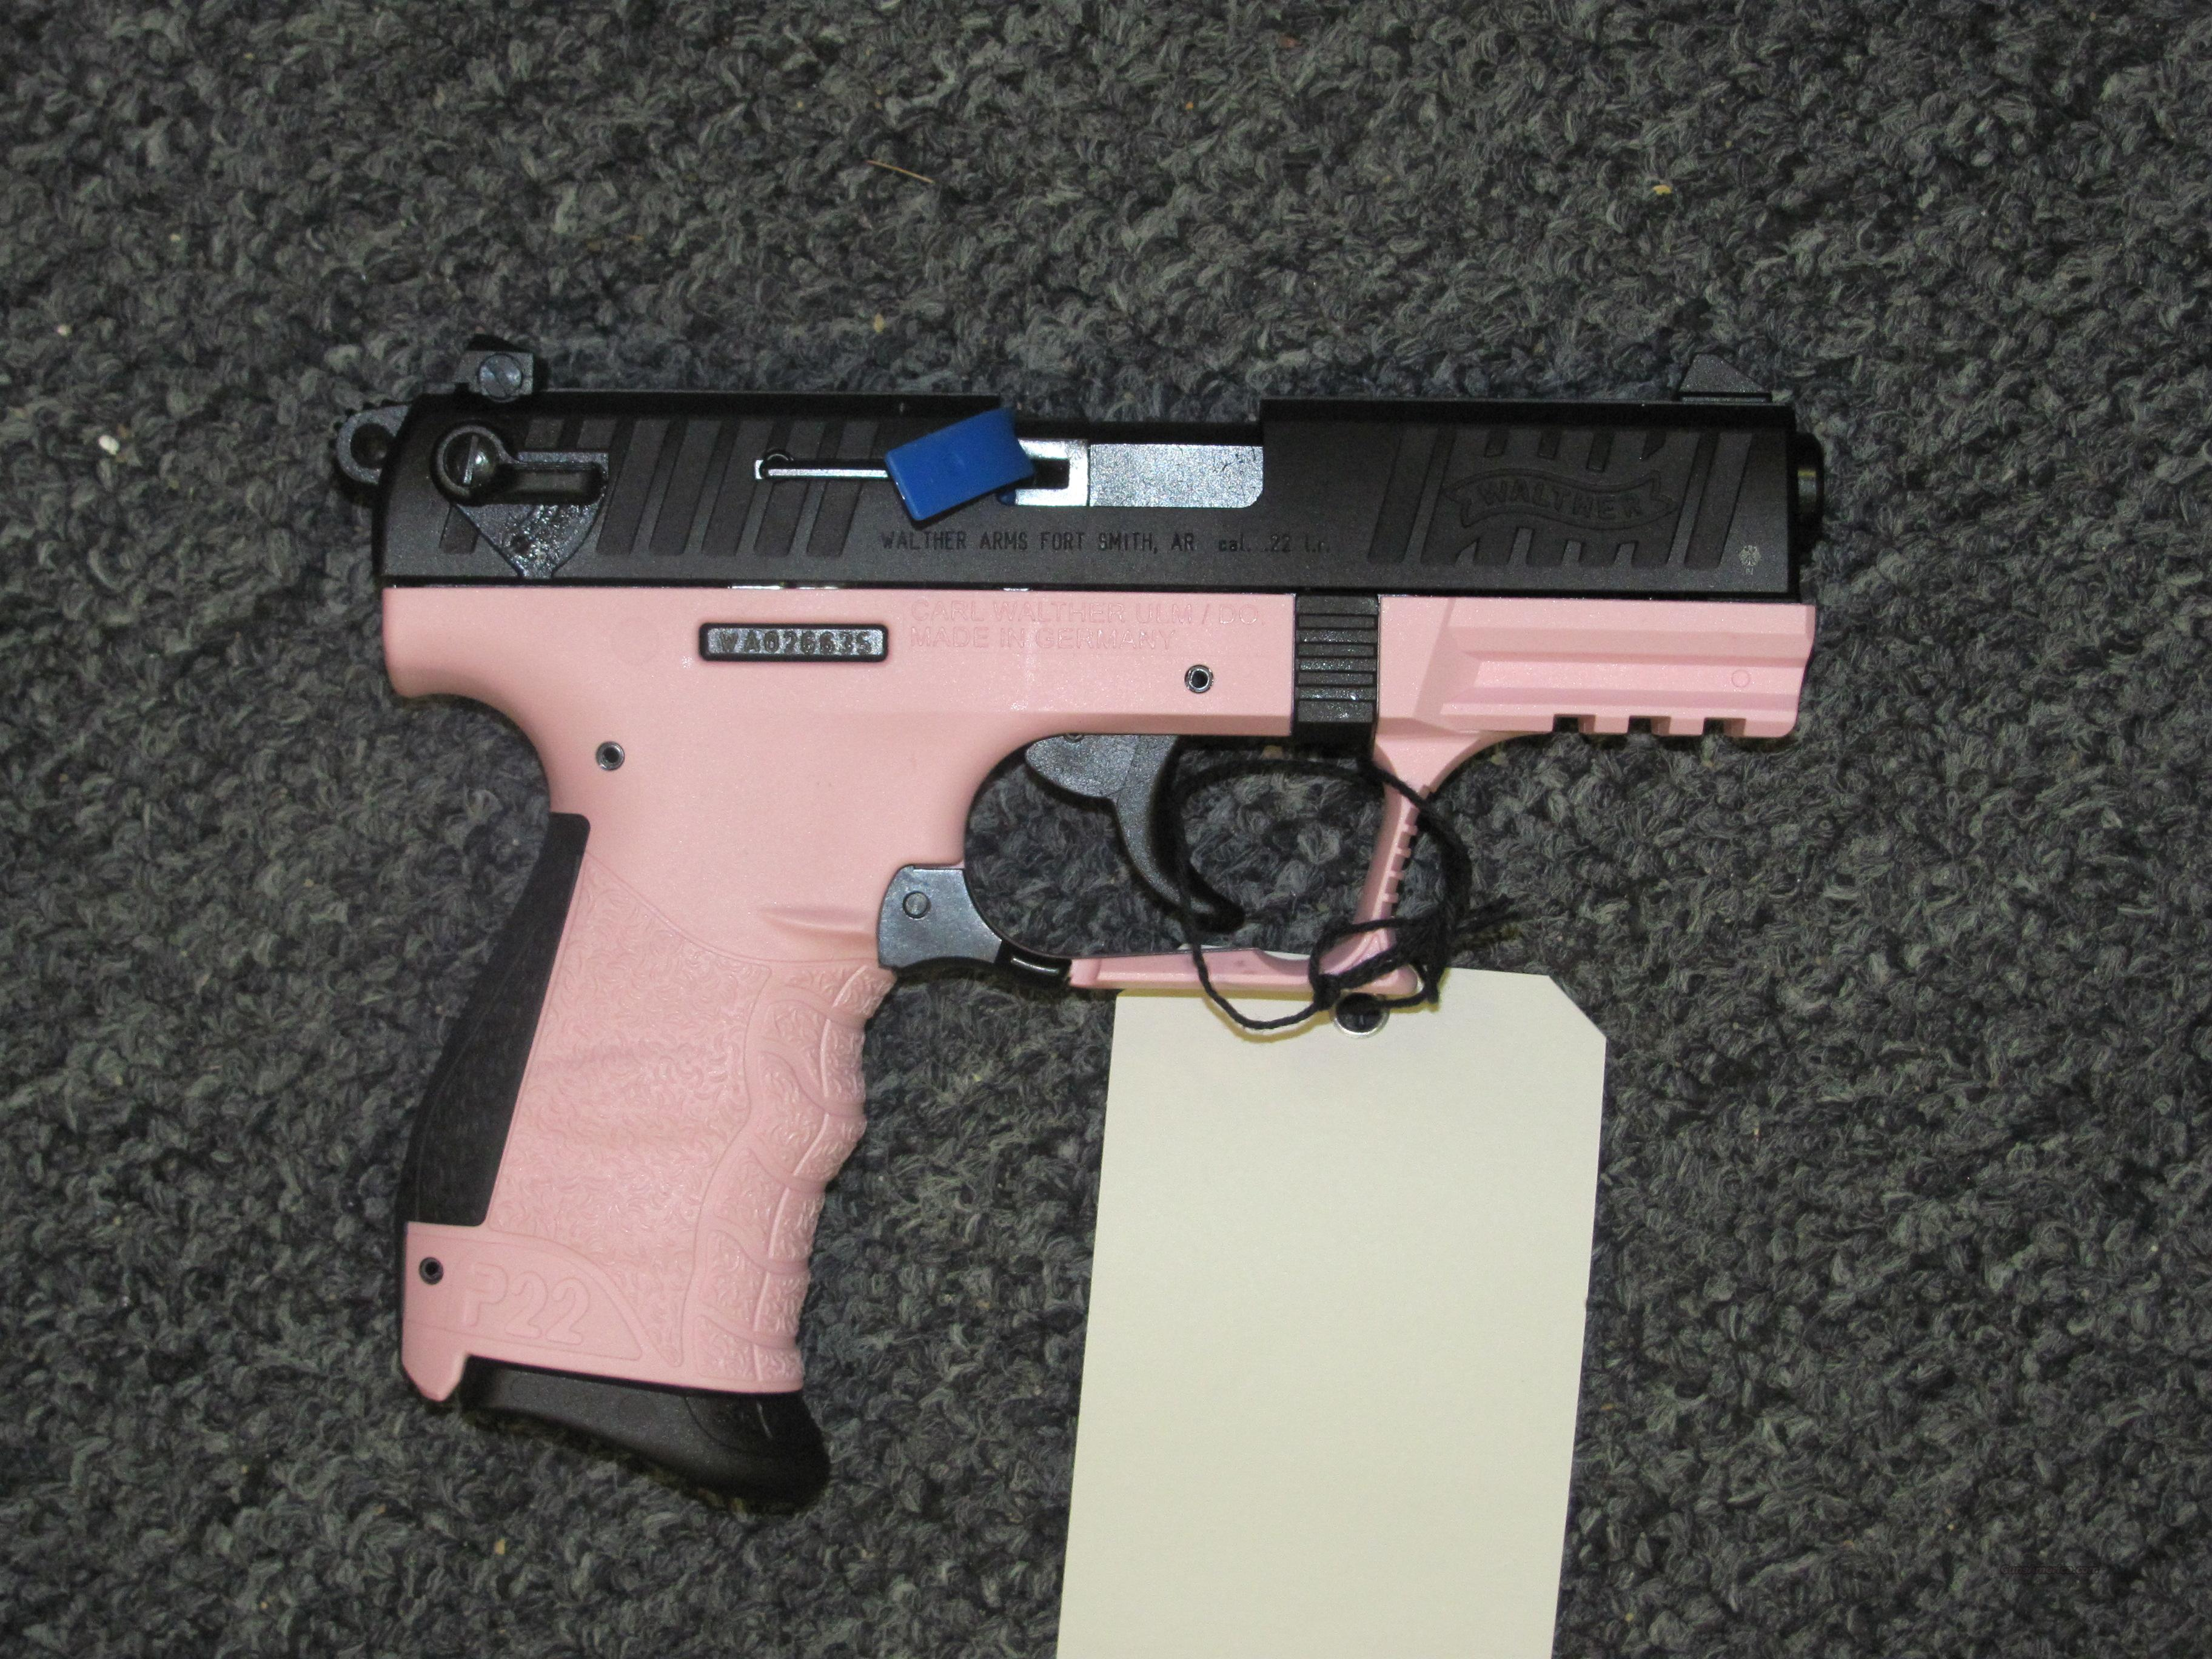 P22 w/Pink Finish  Guns > Pistols > Walther Pistols > Post WWII > P22